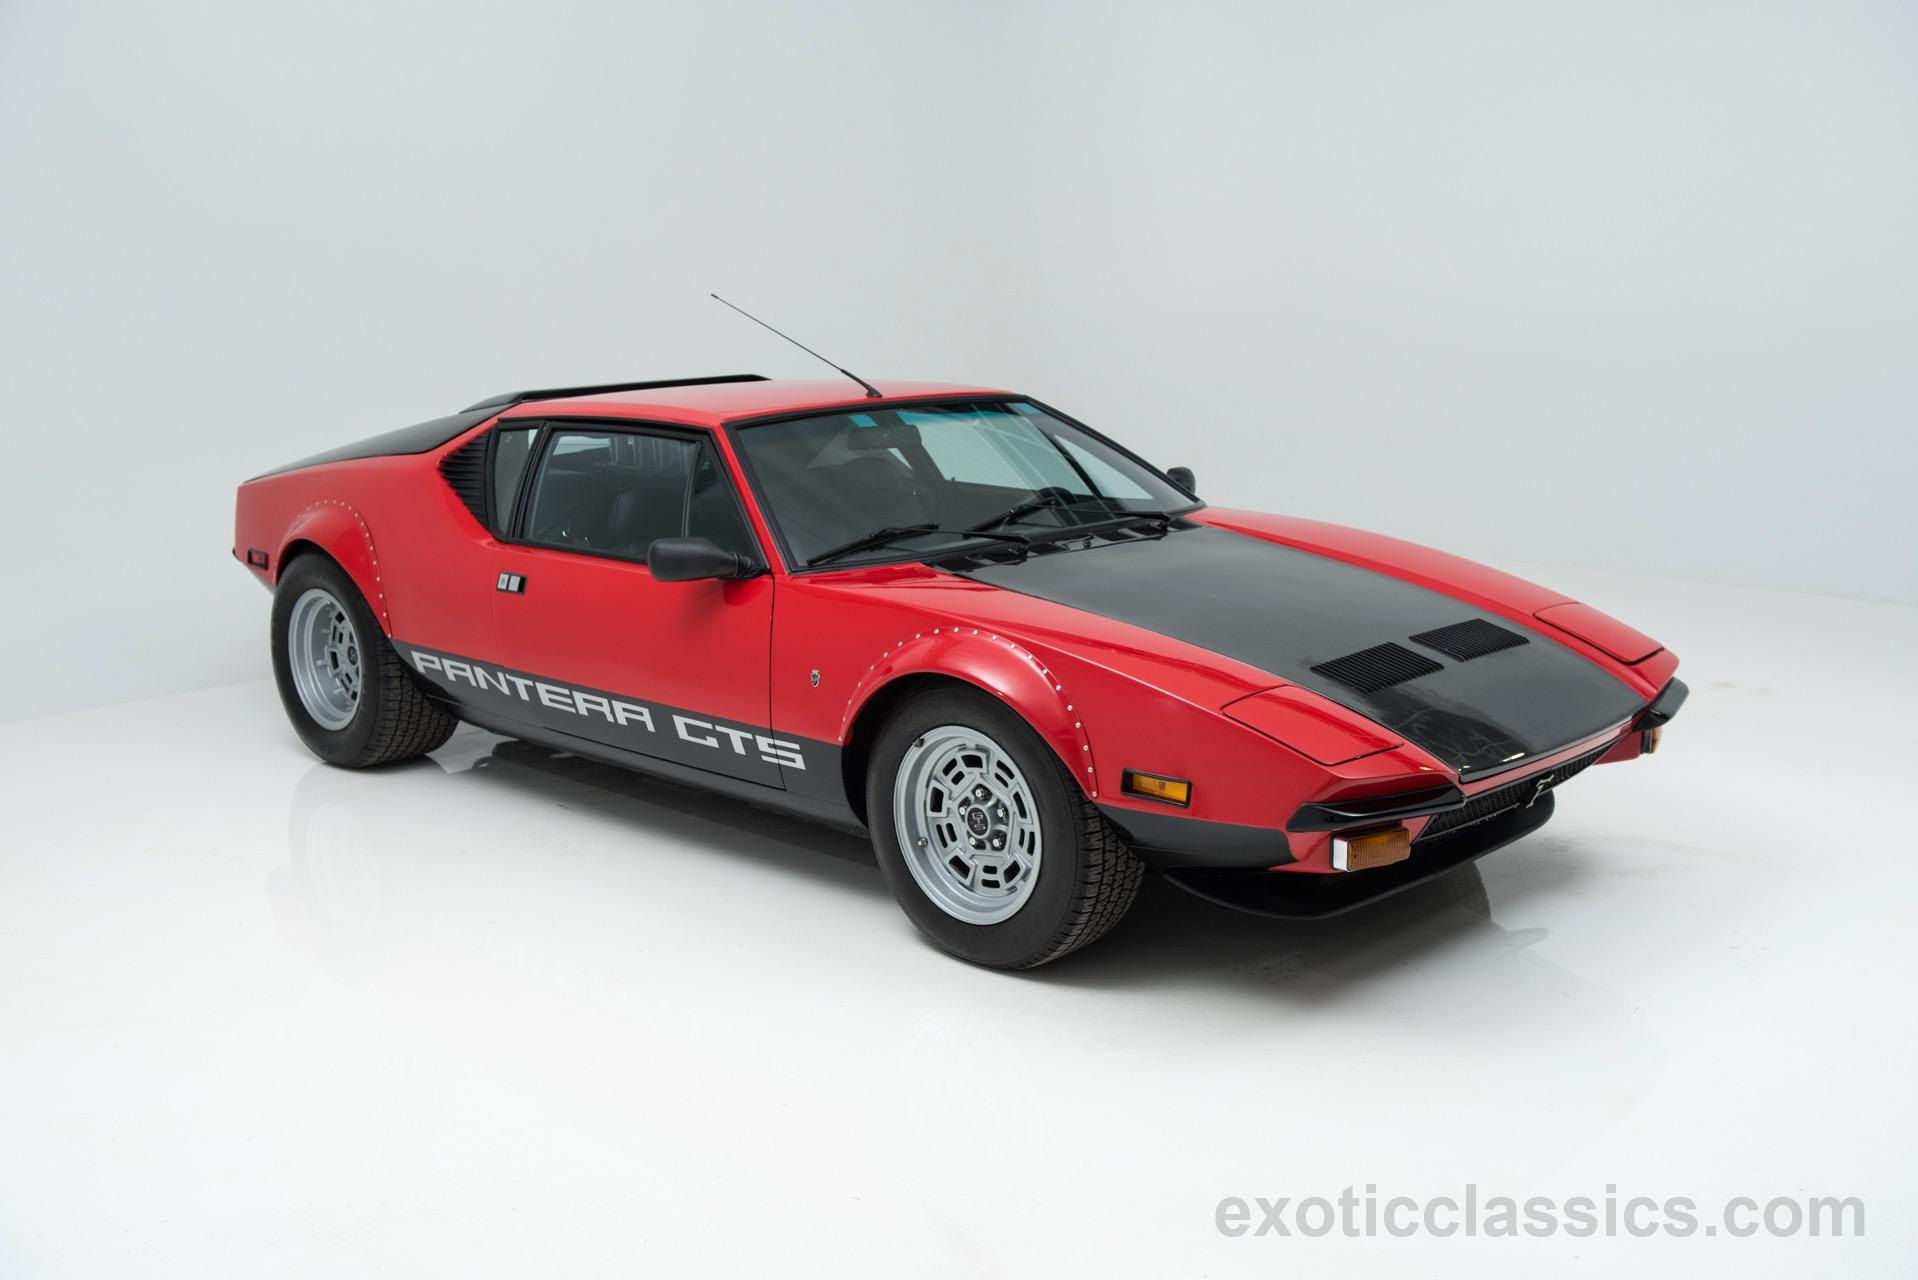 1974 DeTomaso Pantera GTS Exotic and Classic Car Dealership